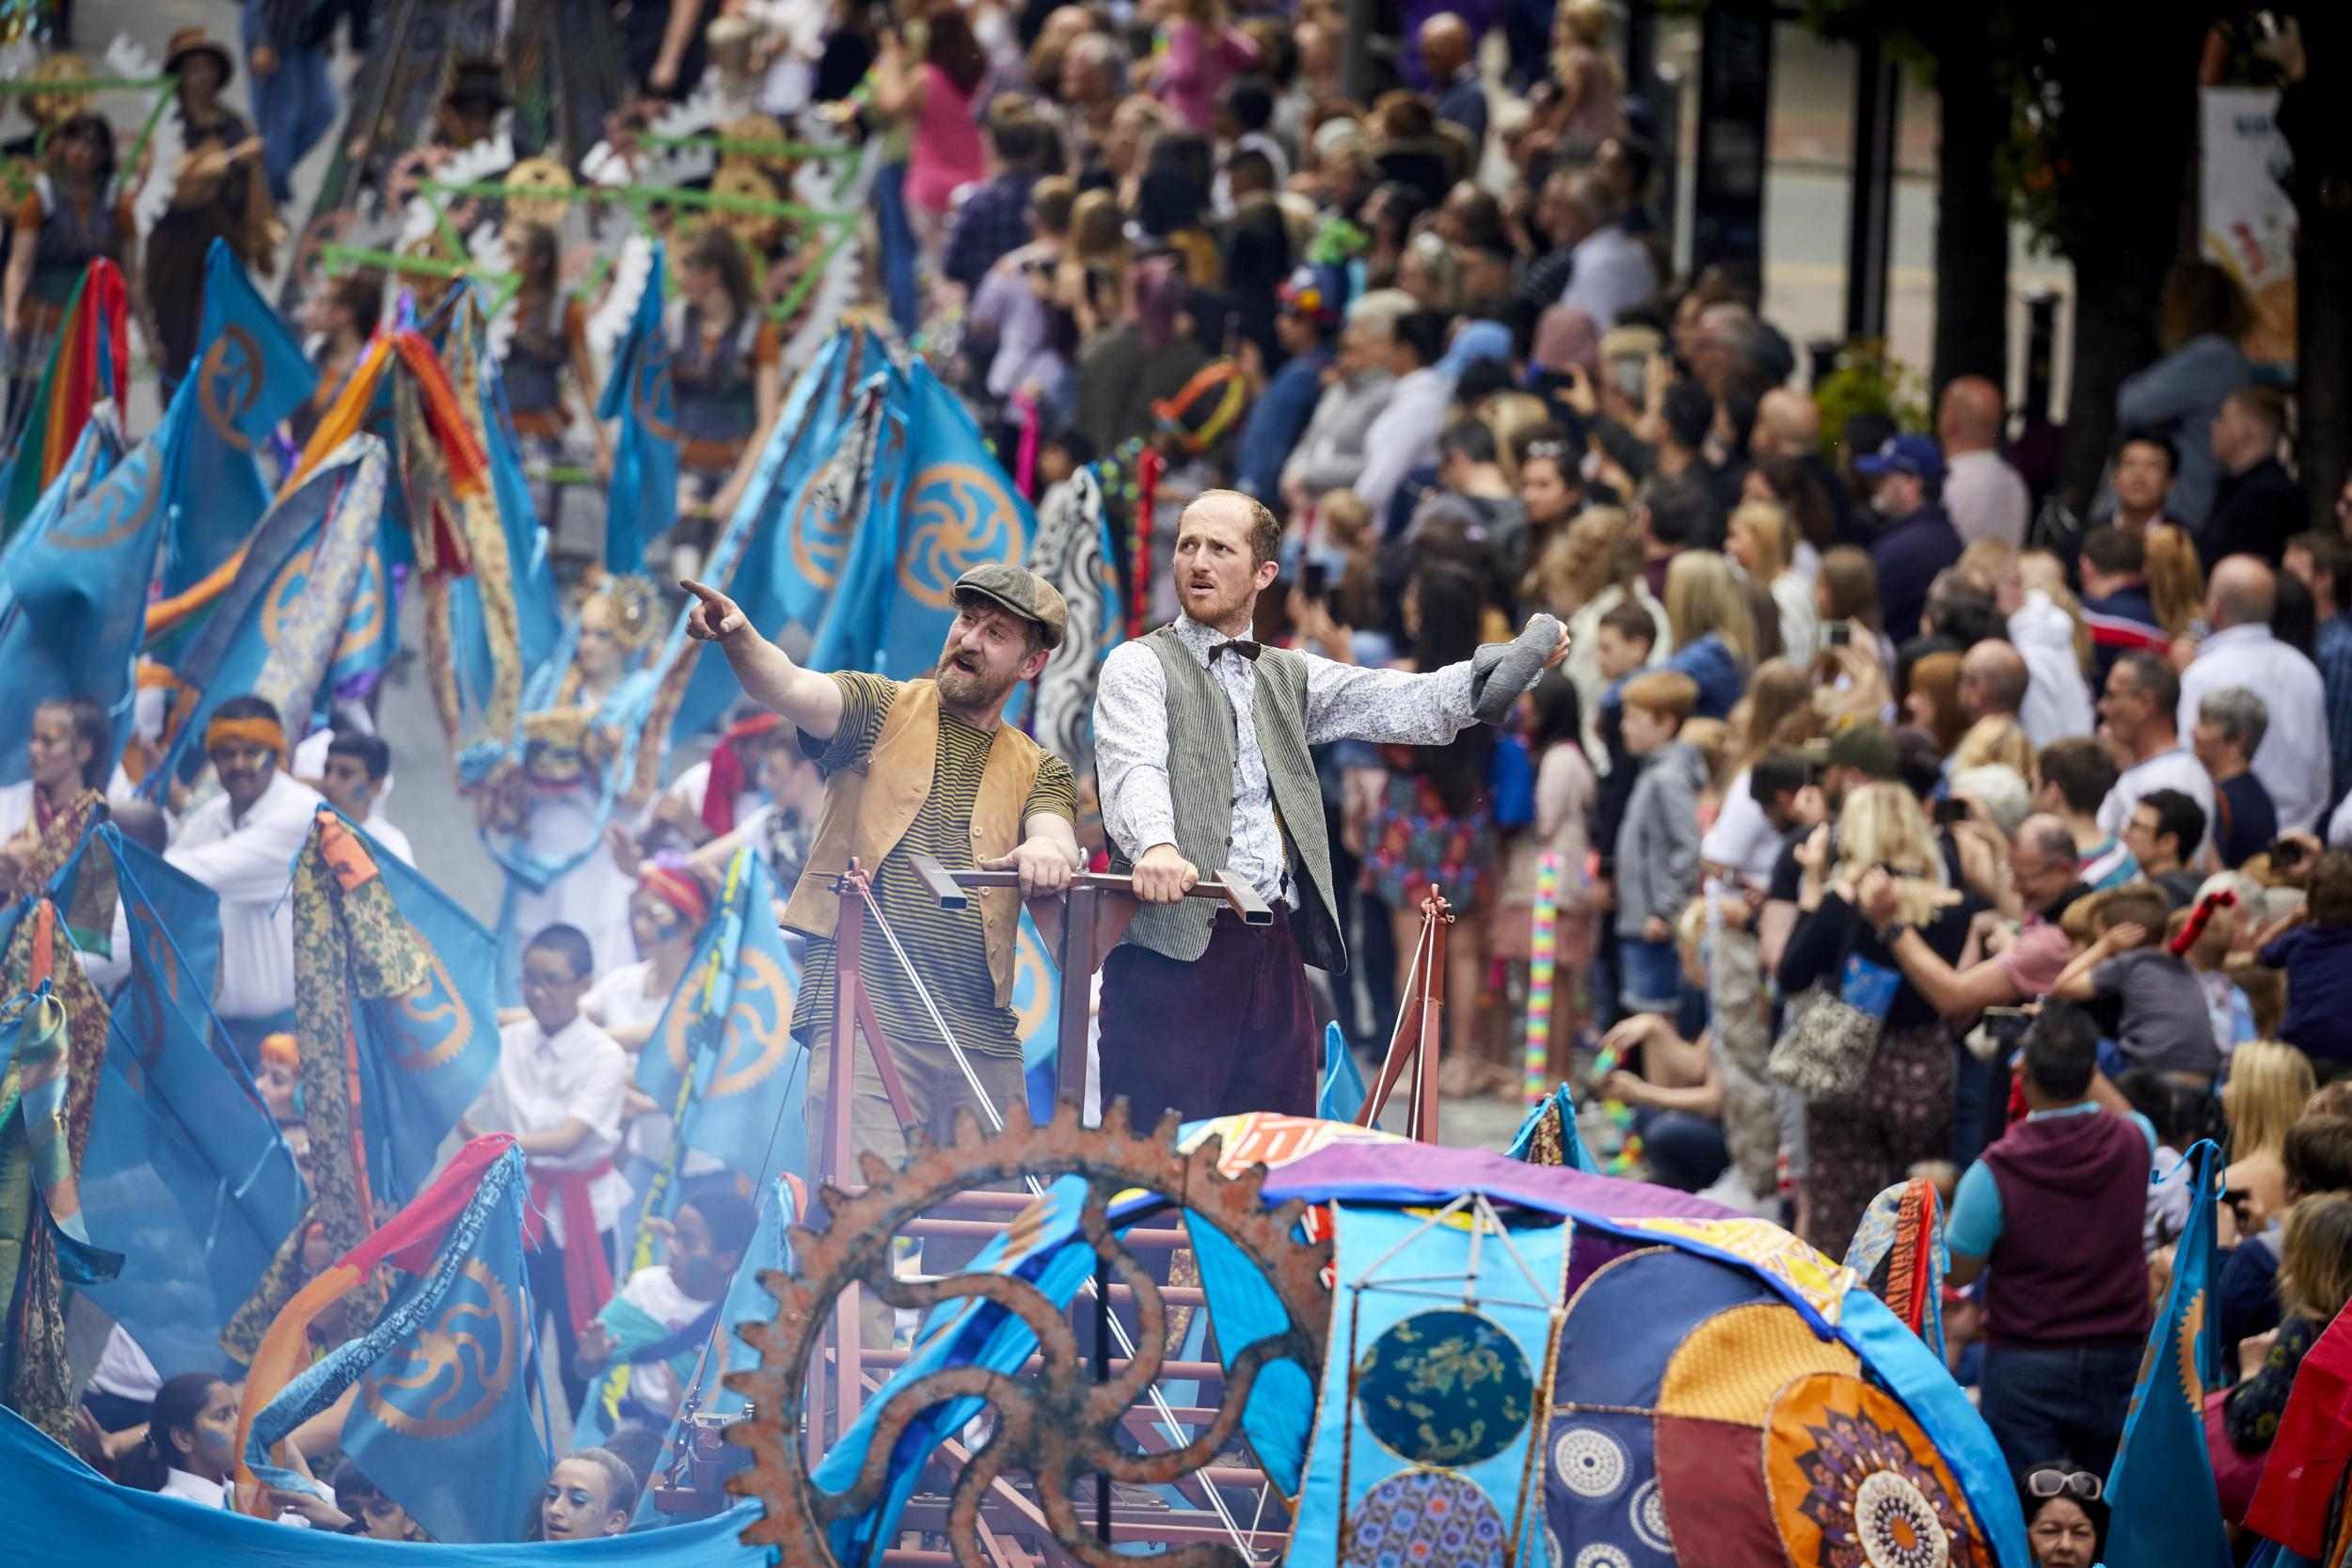 Manchester Day Announces 'Our Planet' Theme Amid Climate Emergency